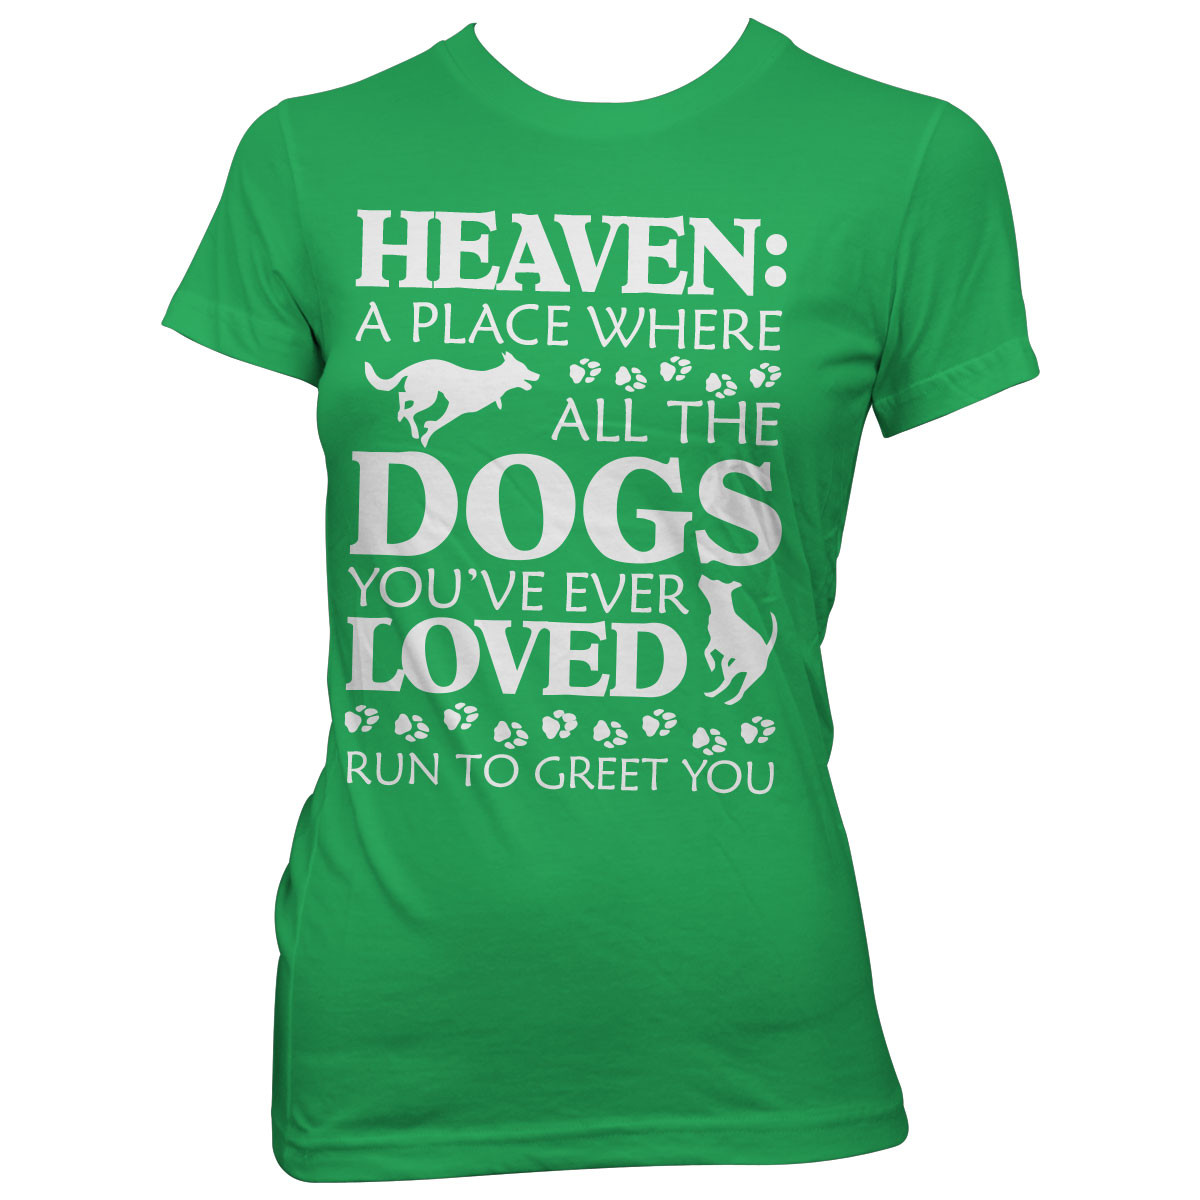 """Heaven: A Place Where Dogs Run To Greet You"" T-Shirt"